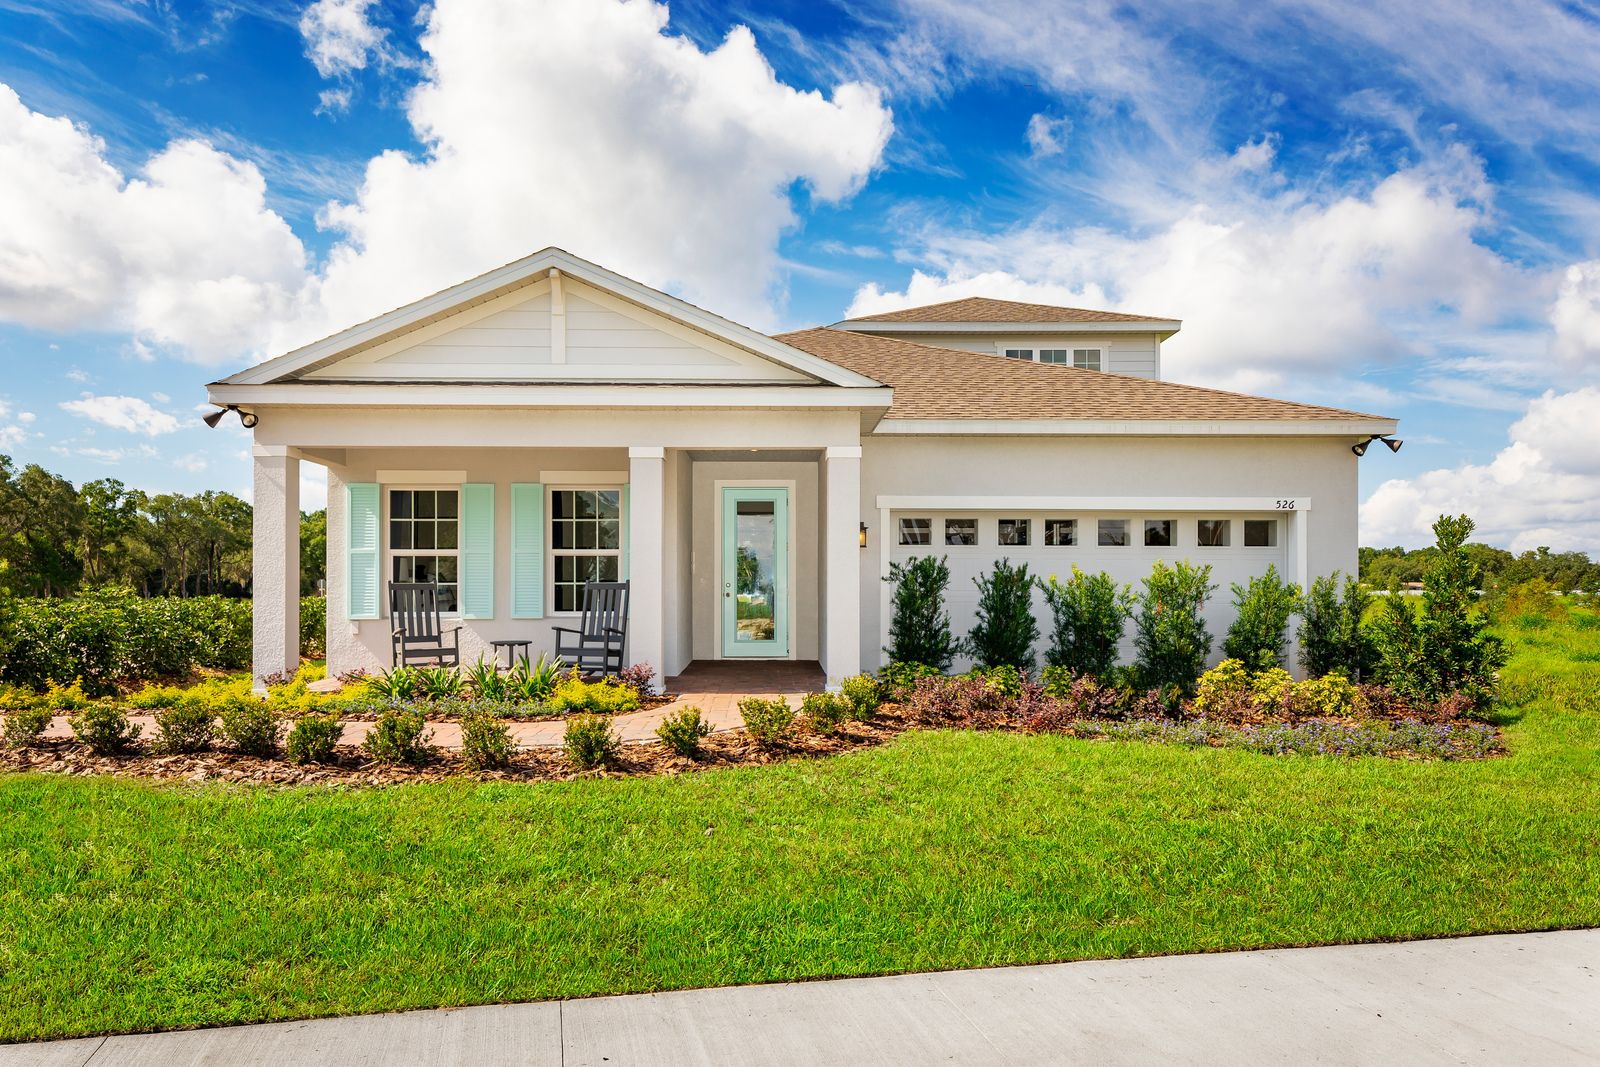 Welcome home to Eagle Crest in Daytona Beach, FL:Come home to a place where fun, relaxation, and a healthy lifestyle comes naturally. Choose from designer palettes to personalize your home just the way you like it! Become a VIP today!